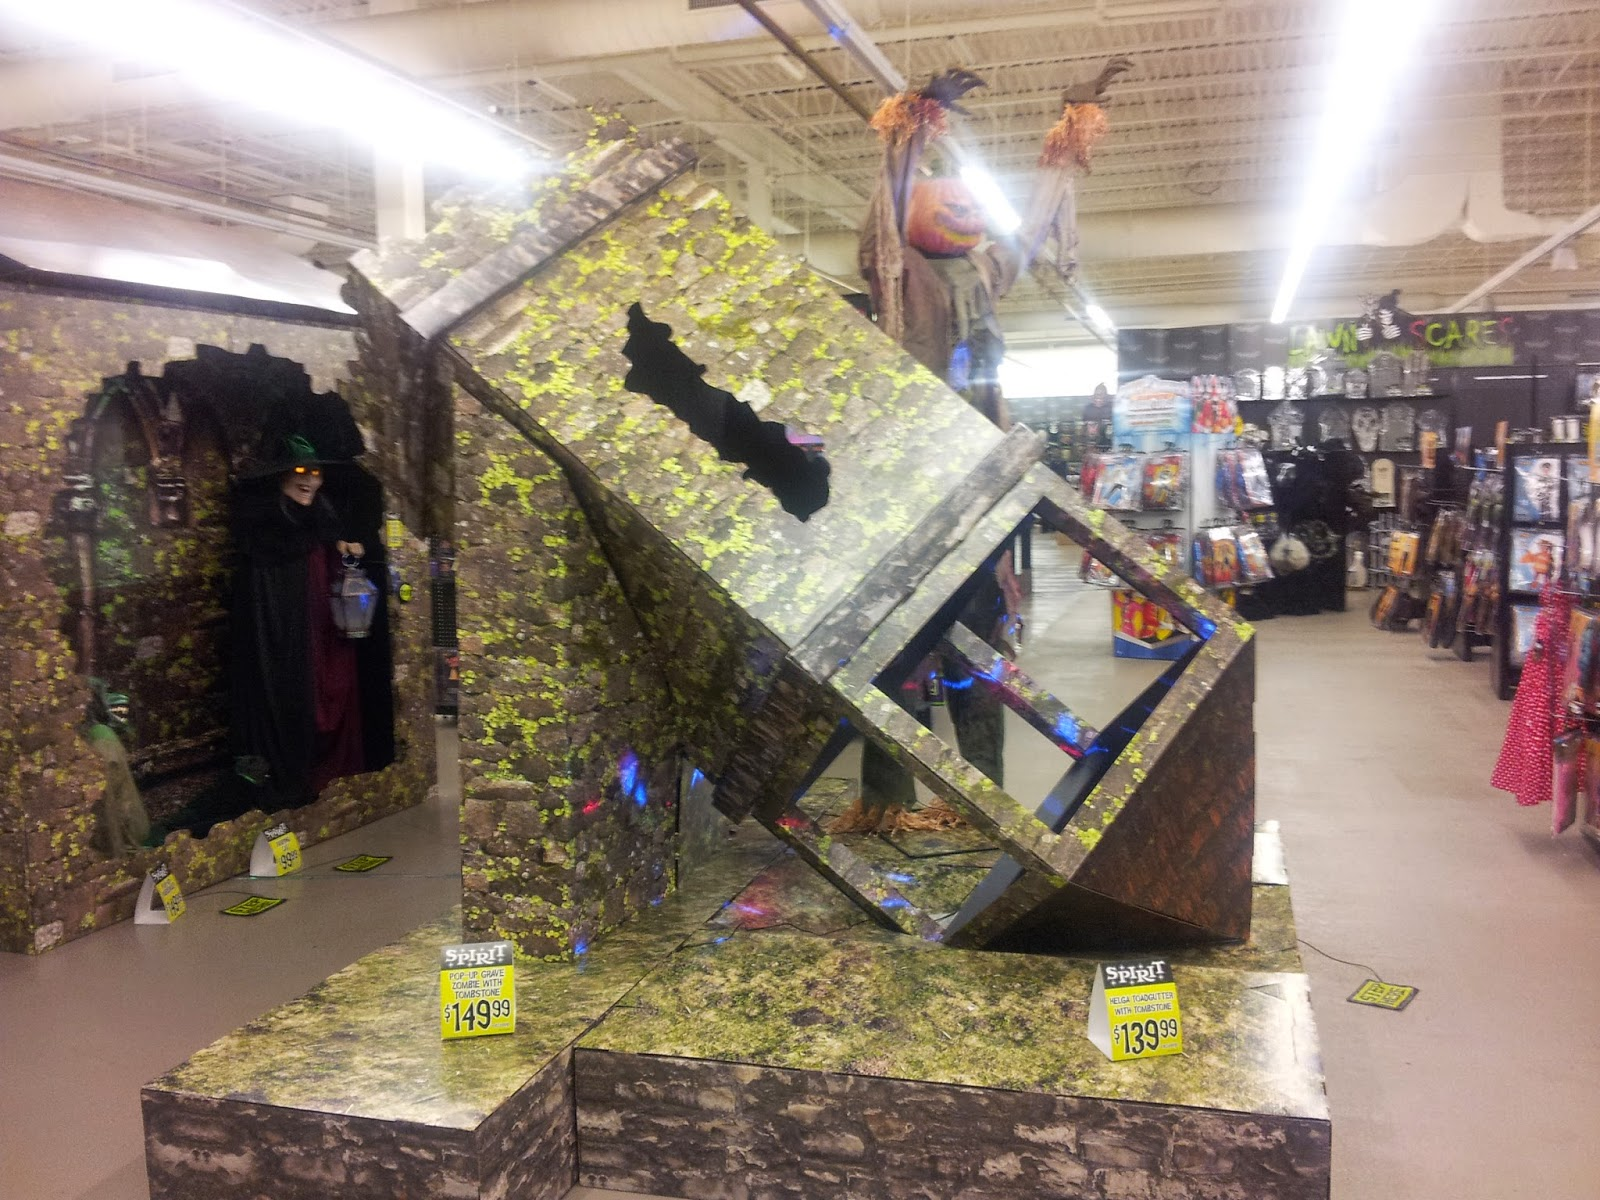 The misadventures of the halloweenut spirit halloween for Michaels craft store erie pa